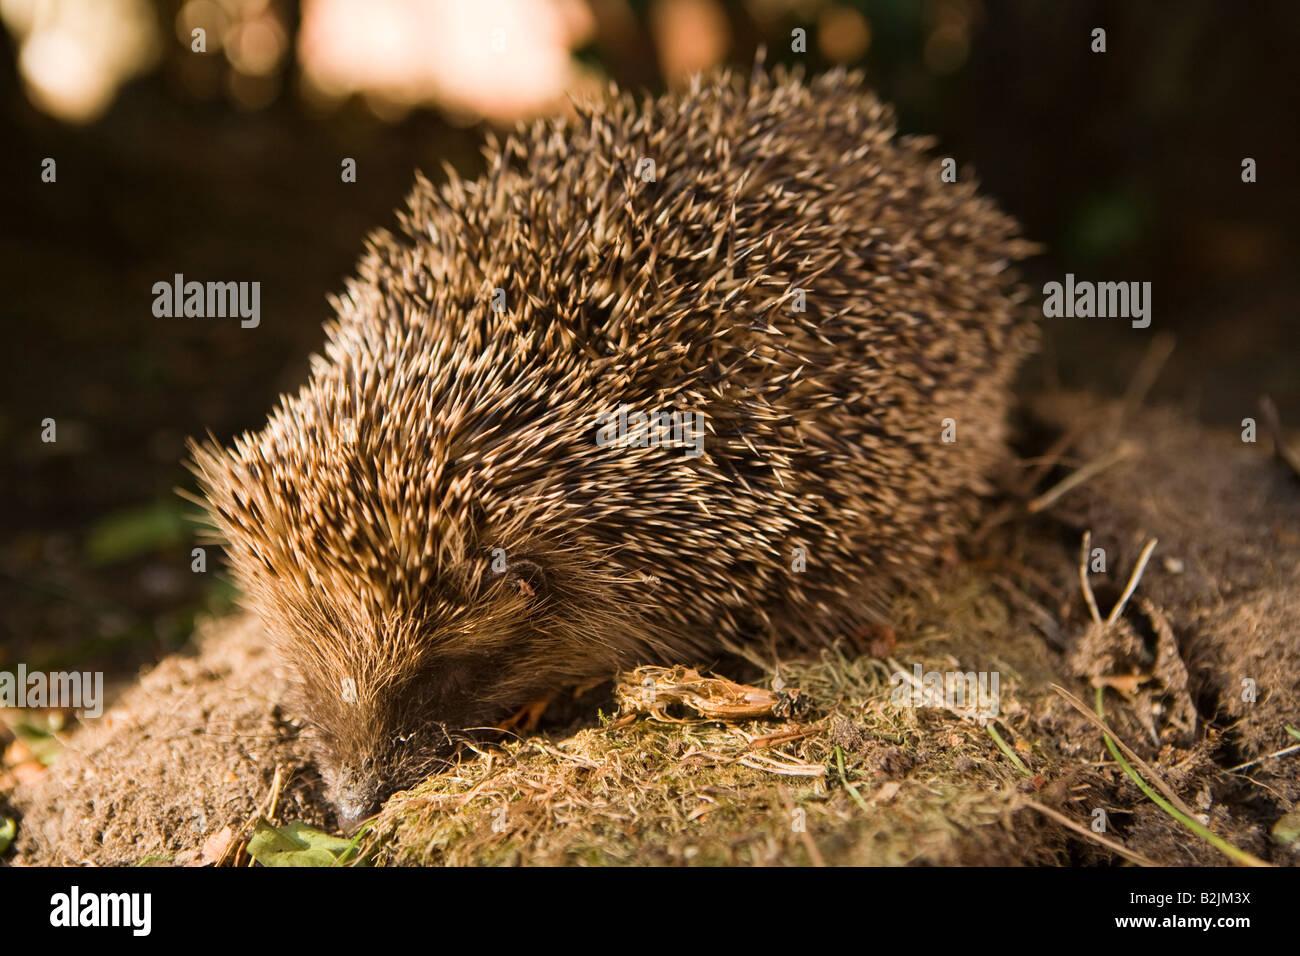 UK wildlife England hedgehog in domestic garden Stock Photo